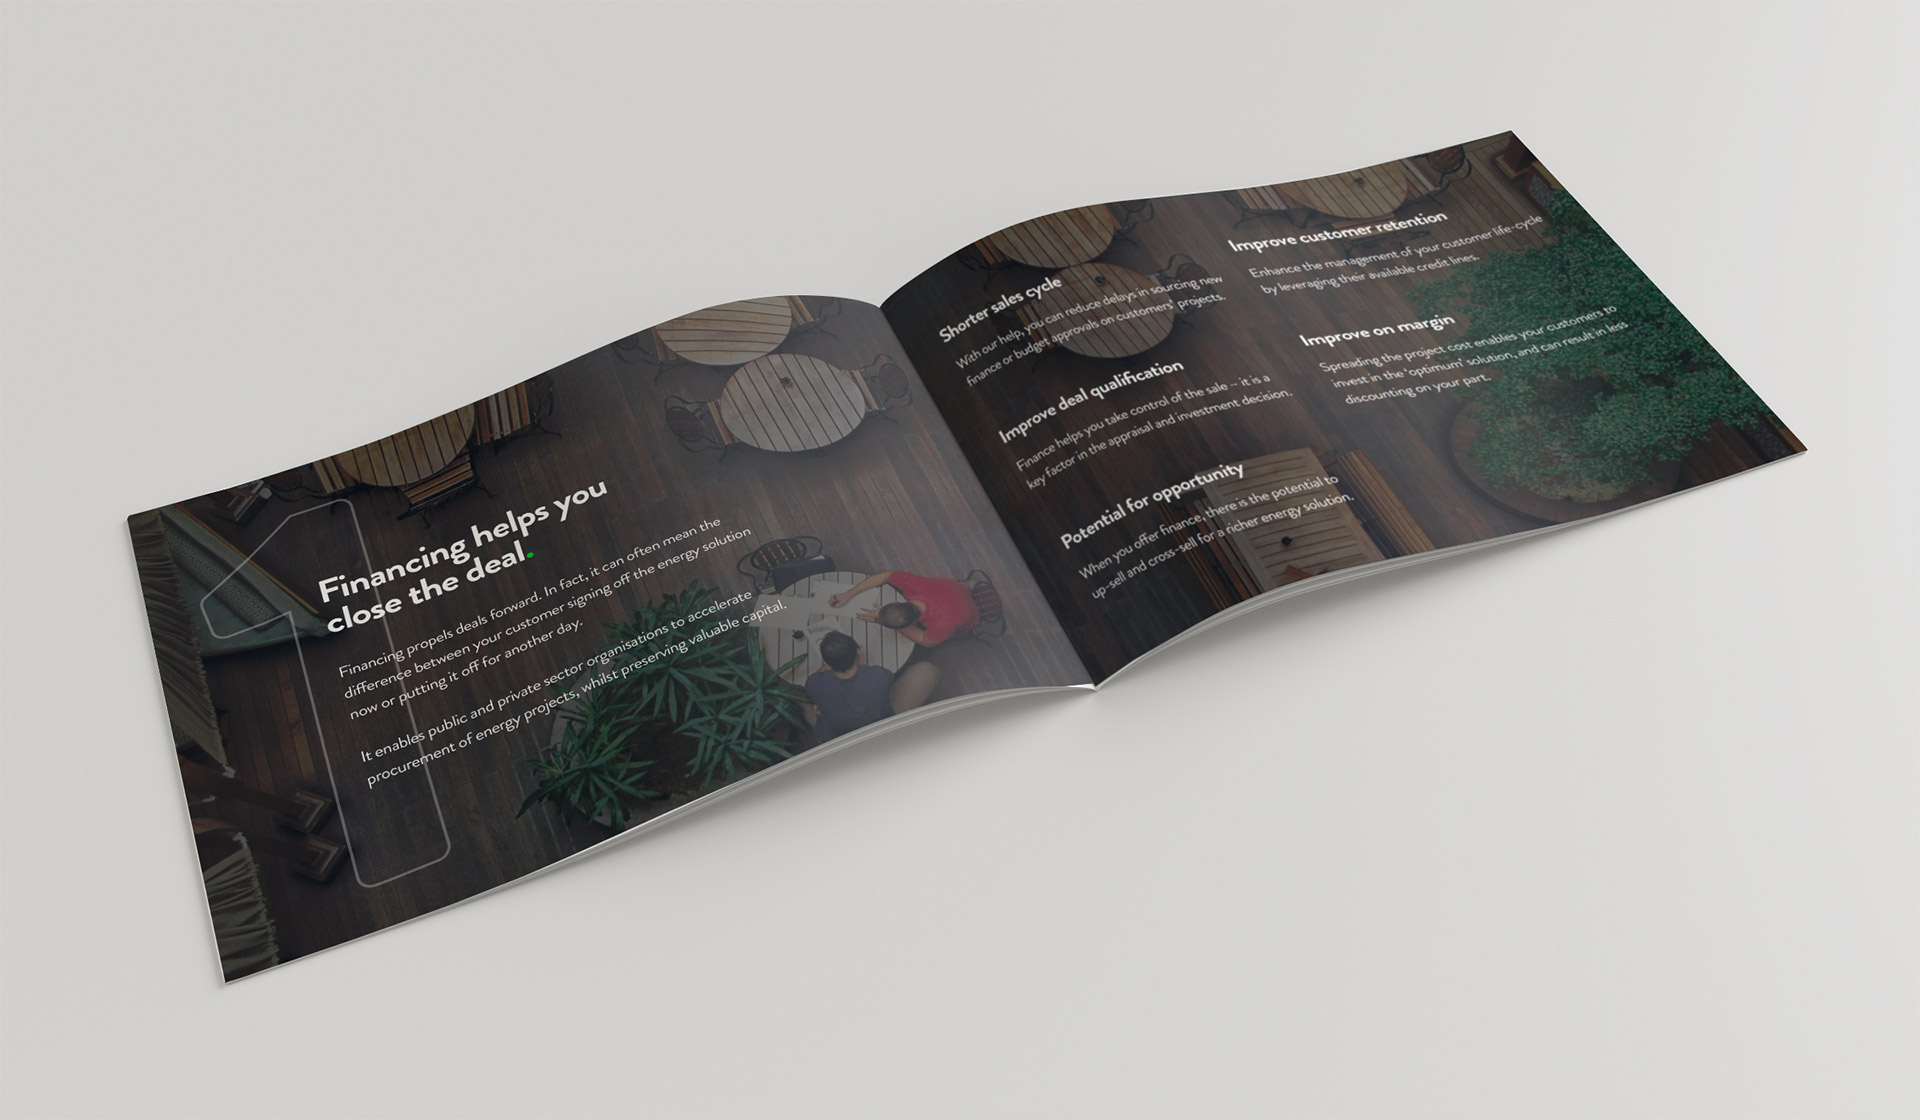 Capitas Finance - Partners Guide Design